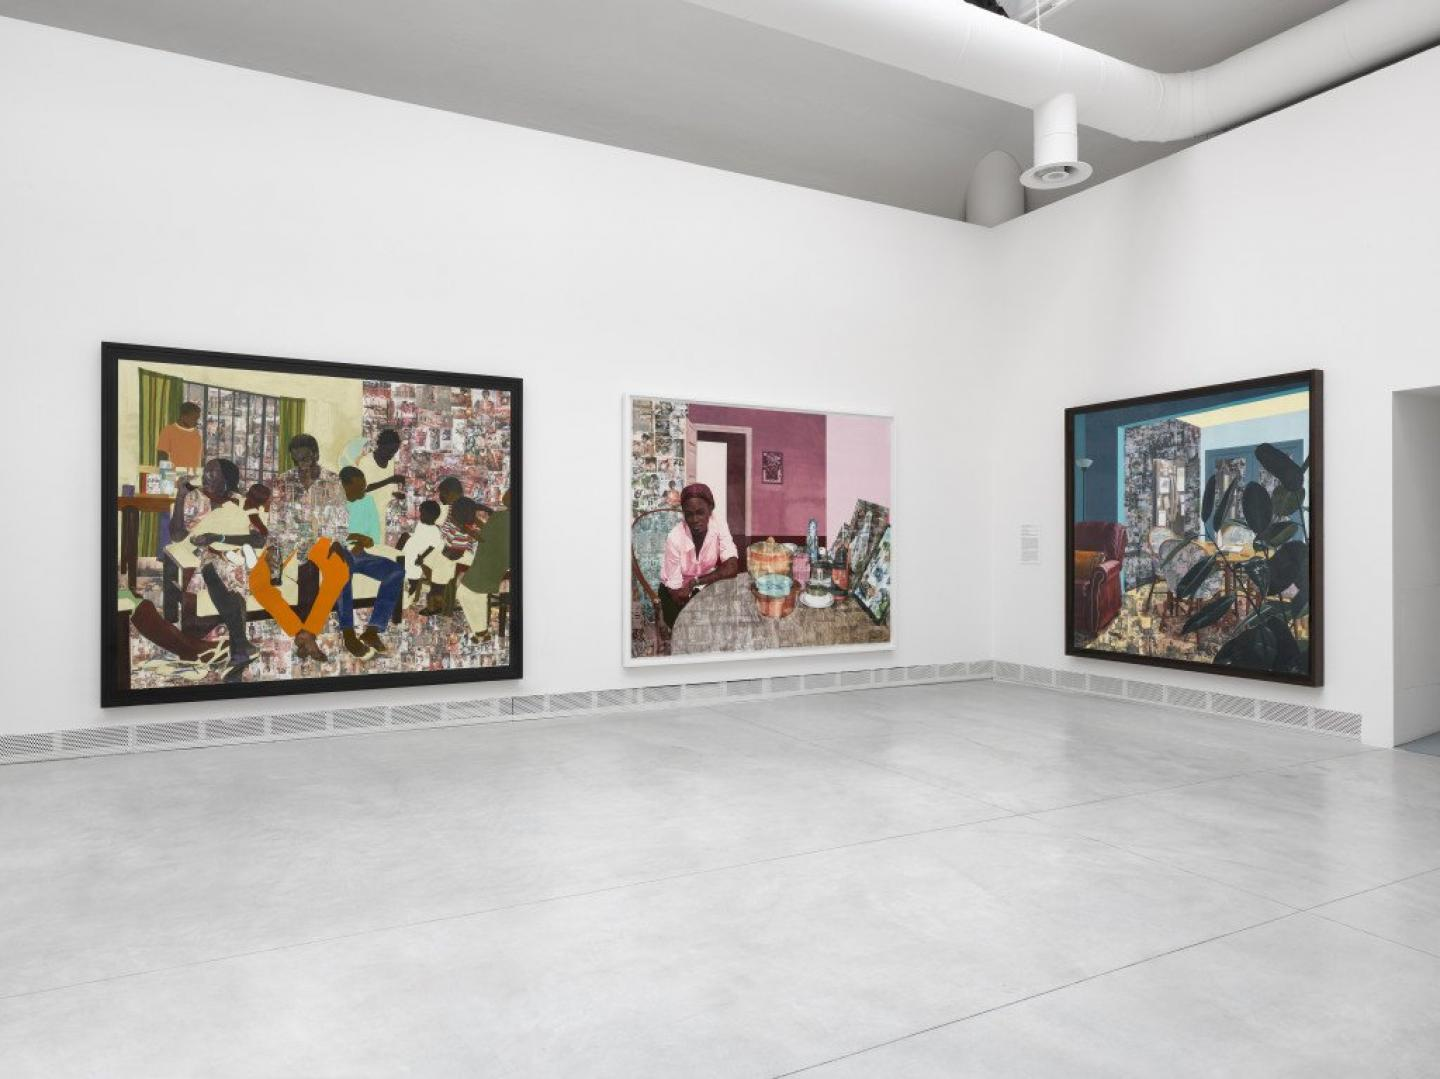 Njideka Akunyili Crosby, œuvres diverses, 2012-2017, Giardini, Court. the artist, Victoria Miro, and David Zwirner